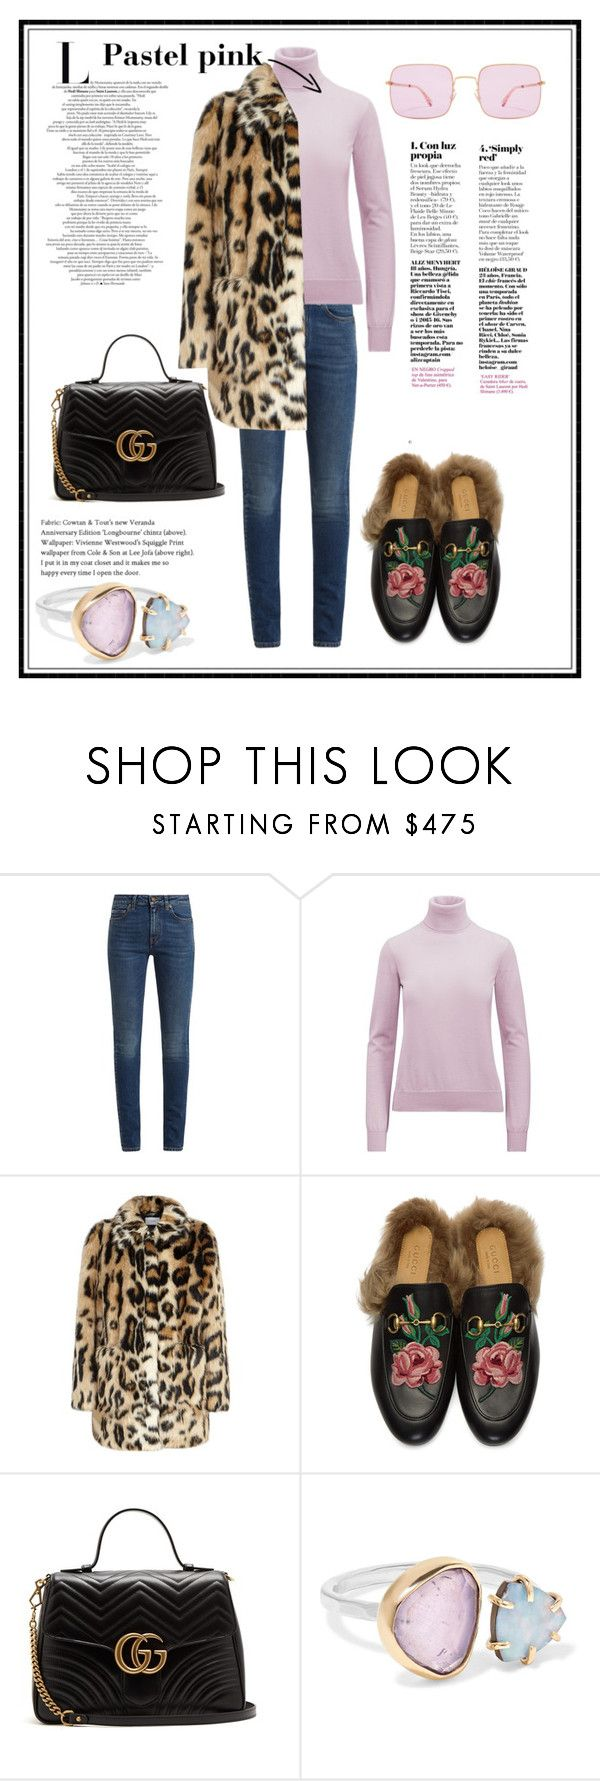 """Pastel pink"" by simonautiero ❤ liked on Polyvore featuring Yves Saint Laurent, Ralph Lauren Collection, Stand, Gucci, Mykita, Melissa Joy Manning, modern and vintage"